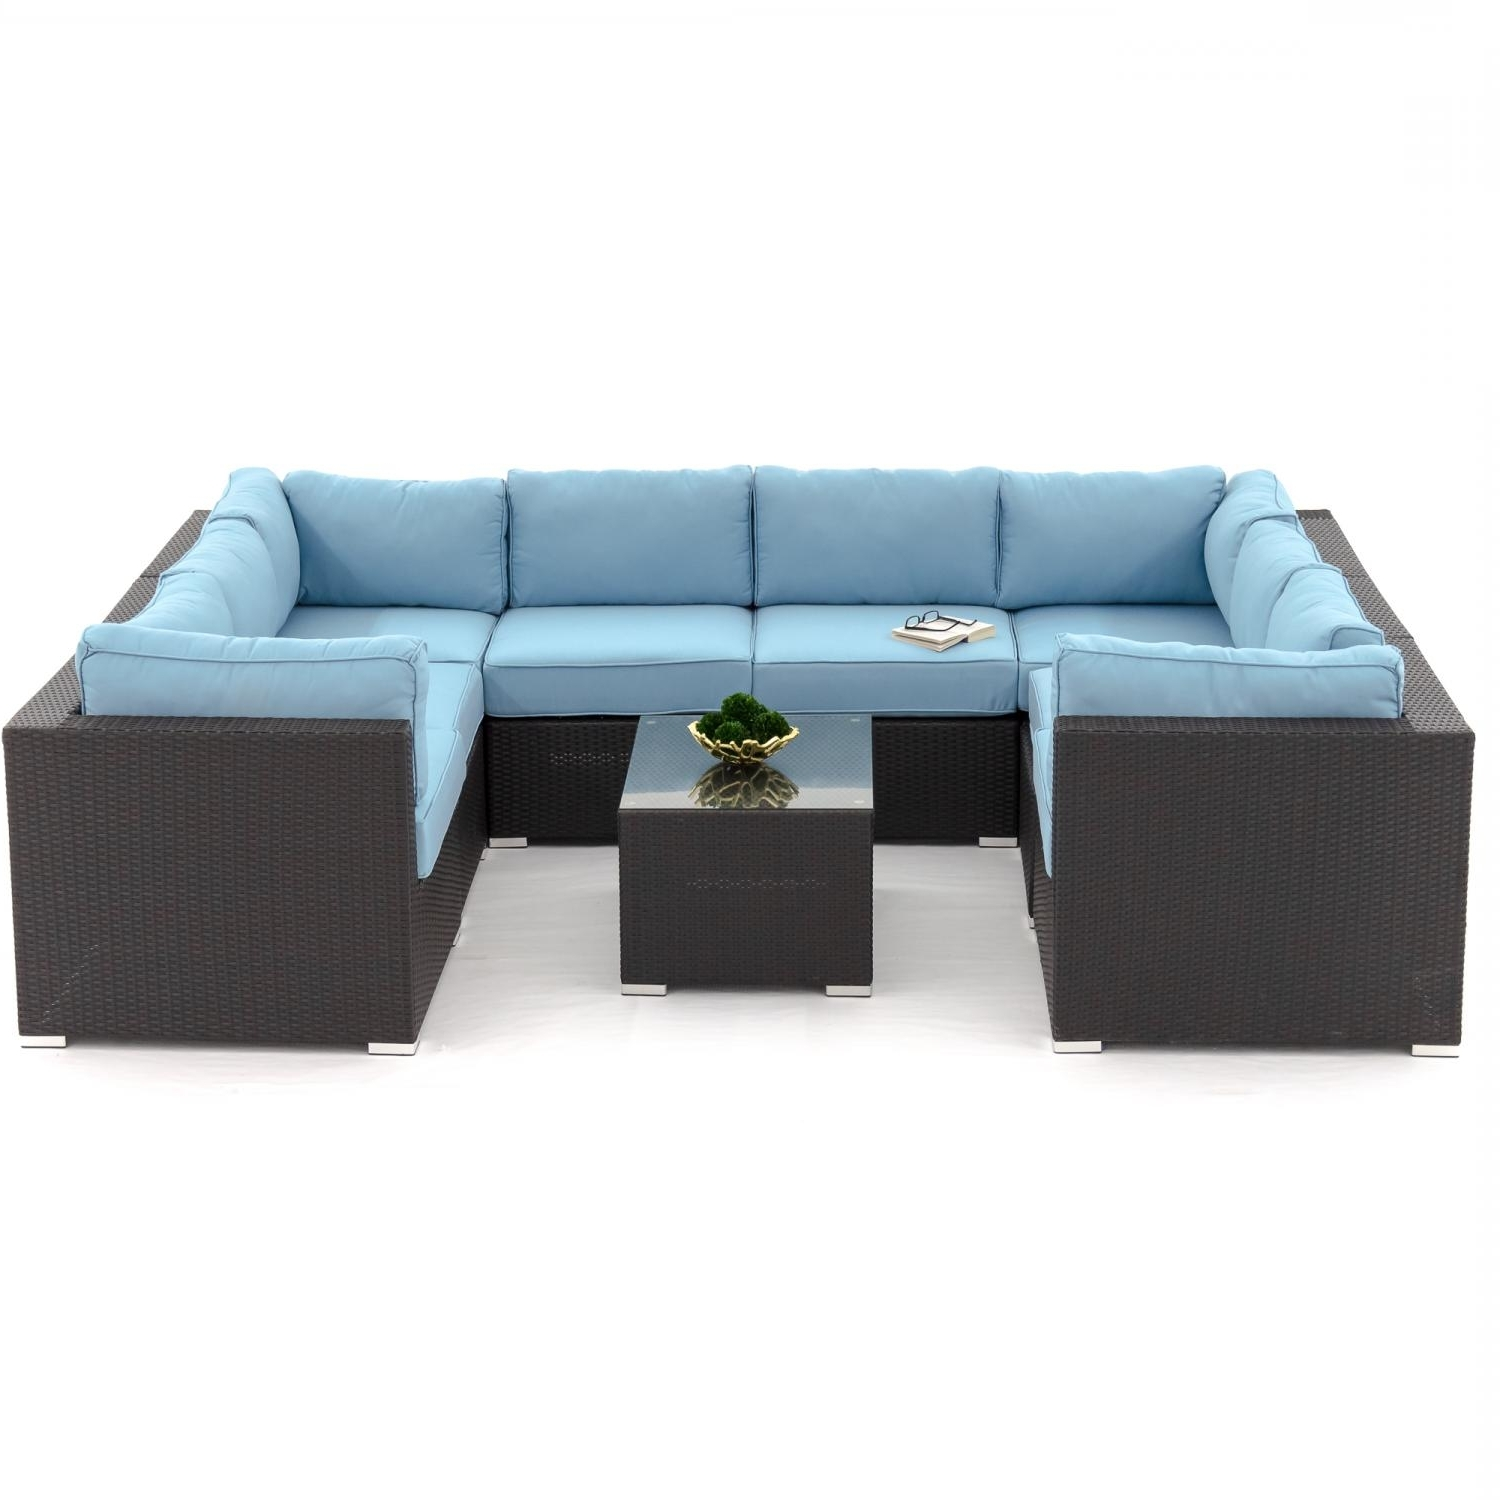 Widely Used Blue U Shaped Sectionals Intended For U Shaped Outdoor Sectional – Outdoor Designs (View 16 of 20)